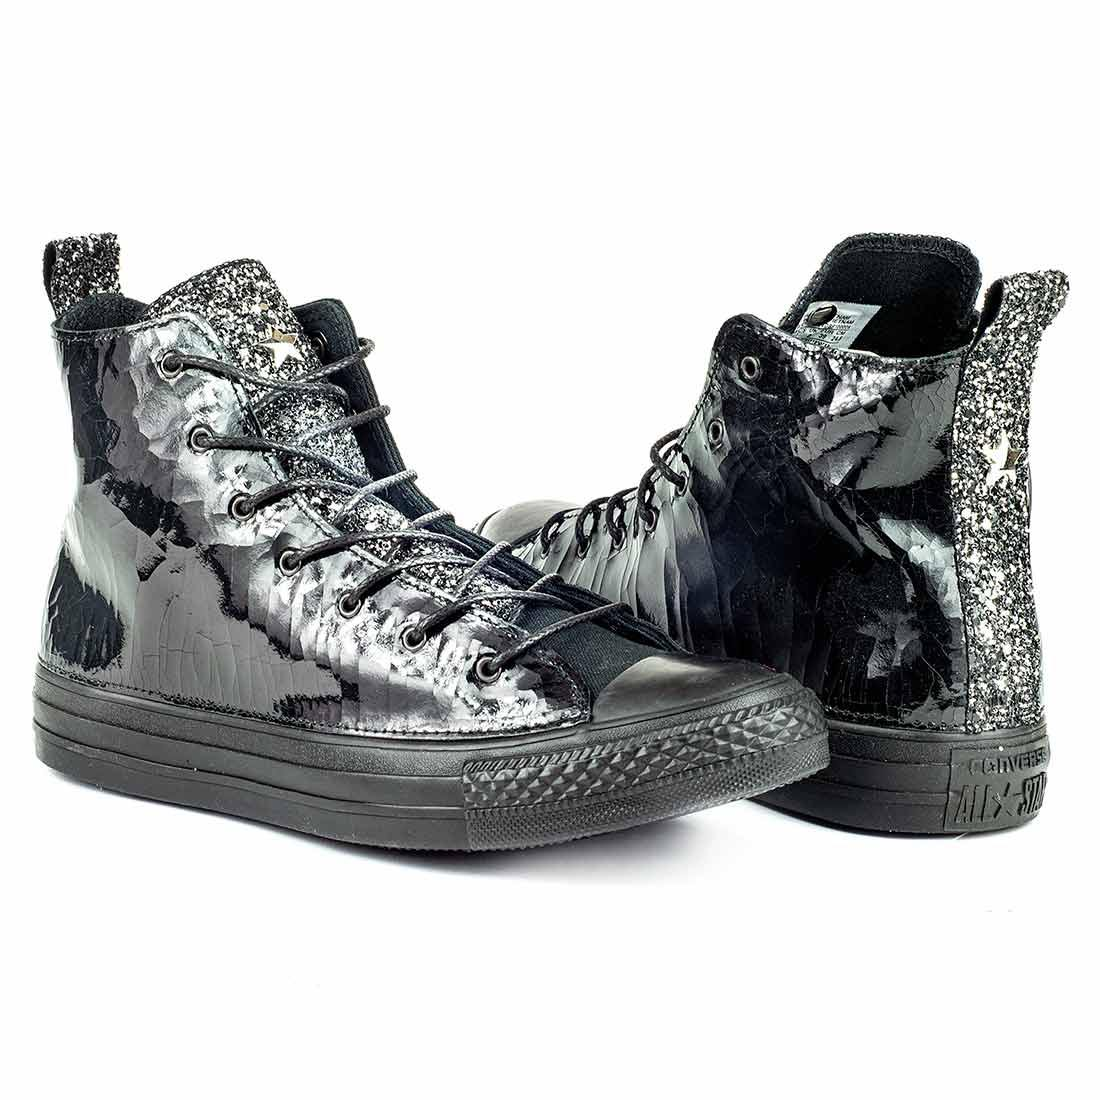 All Star alte Nere in vernice e brillantini Argento scontate in saldo